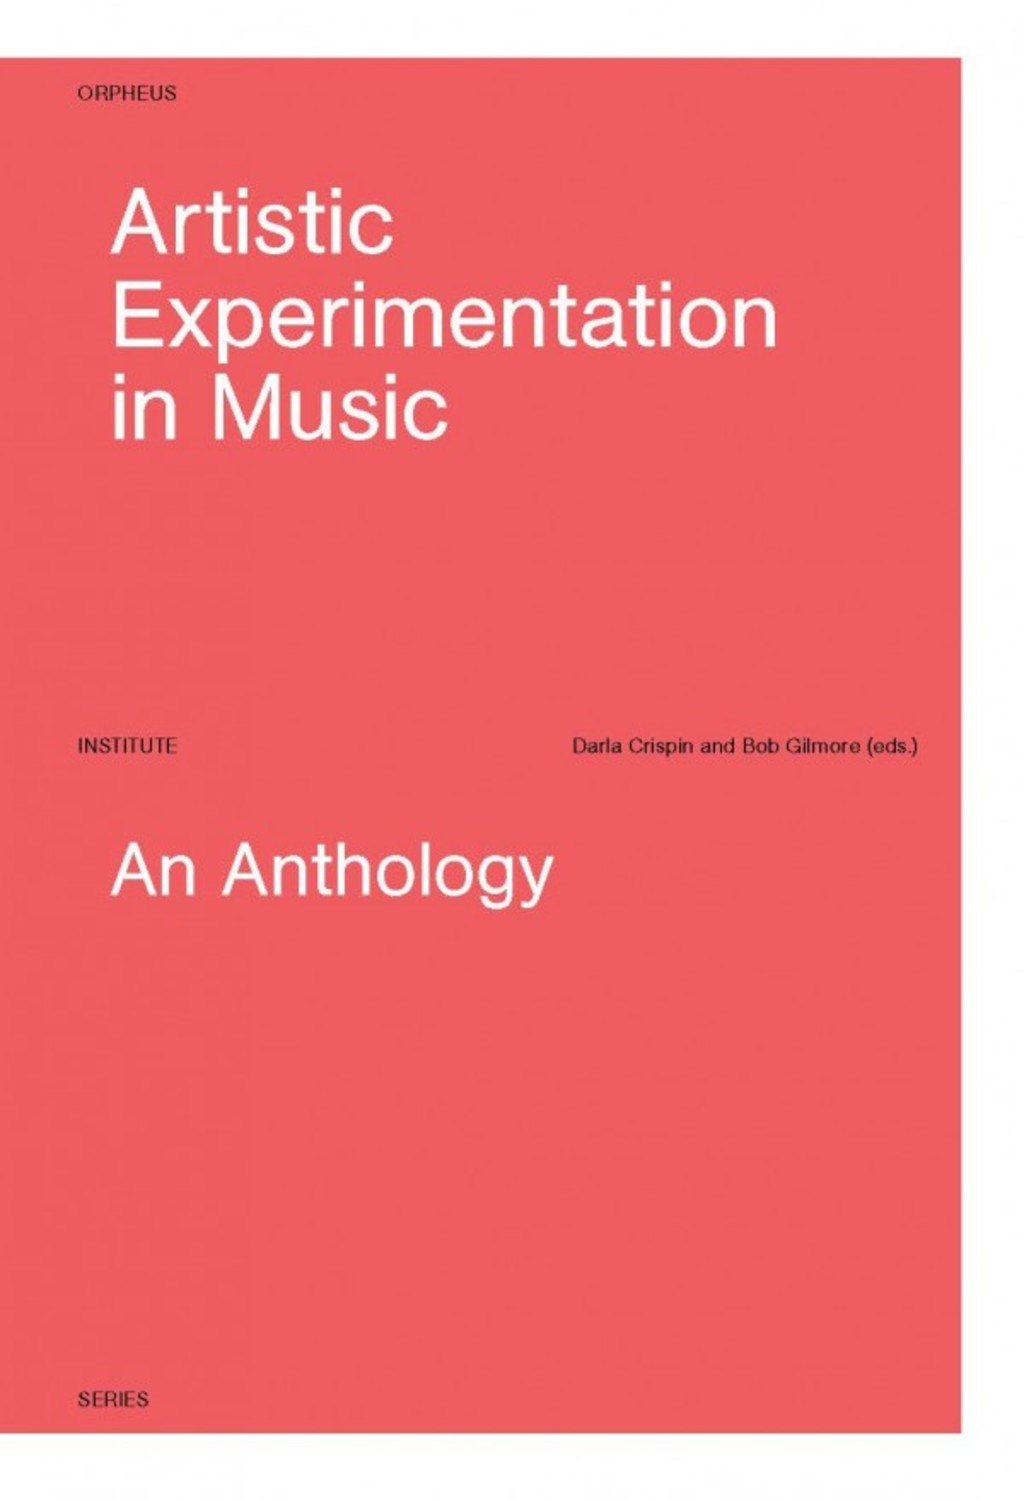 Artistic Experimentation in Music